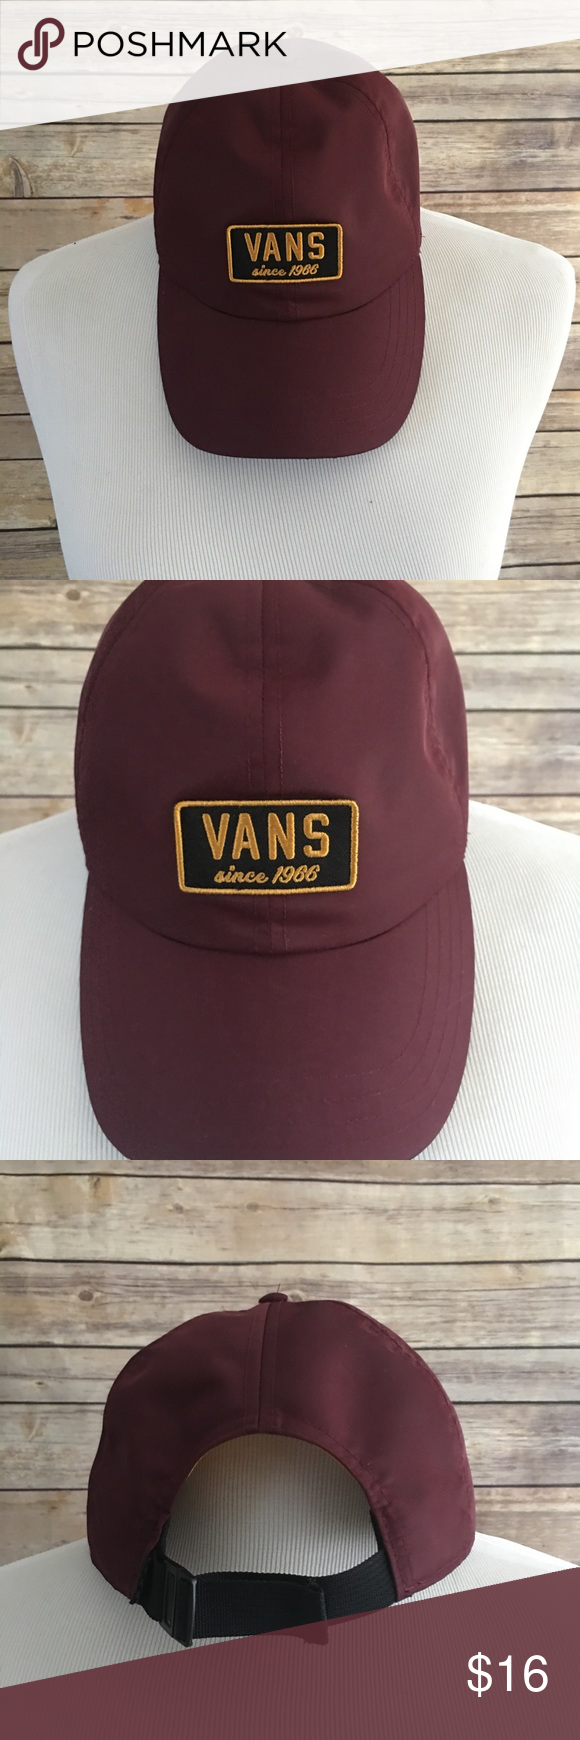 Vans Boom Boom Baseball Hat Created as a symbol representing the attitude and  Vans Boom Boom Baseball Hat Created as a symbol representing the attitude and essence of fe...